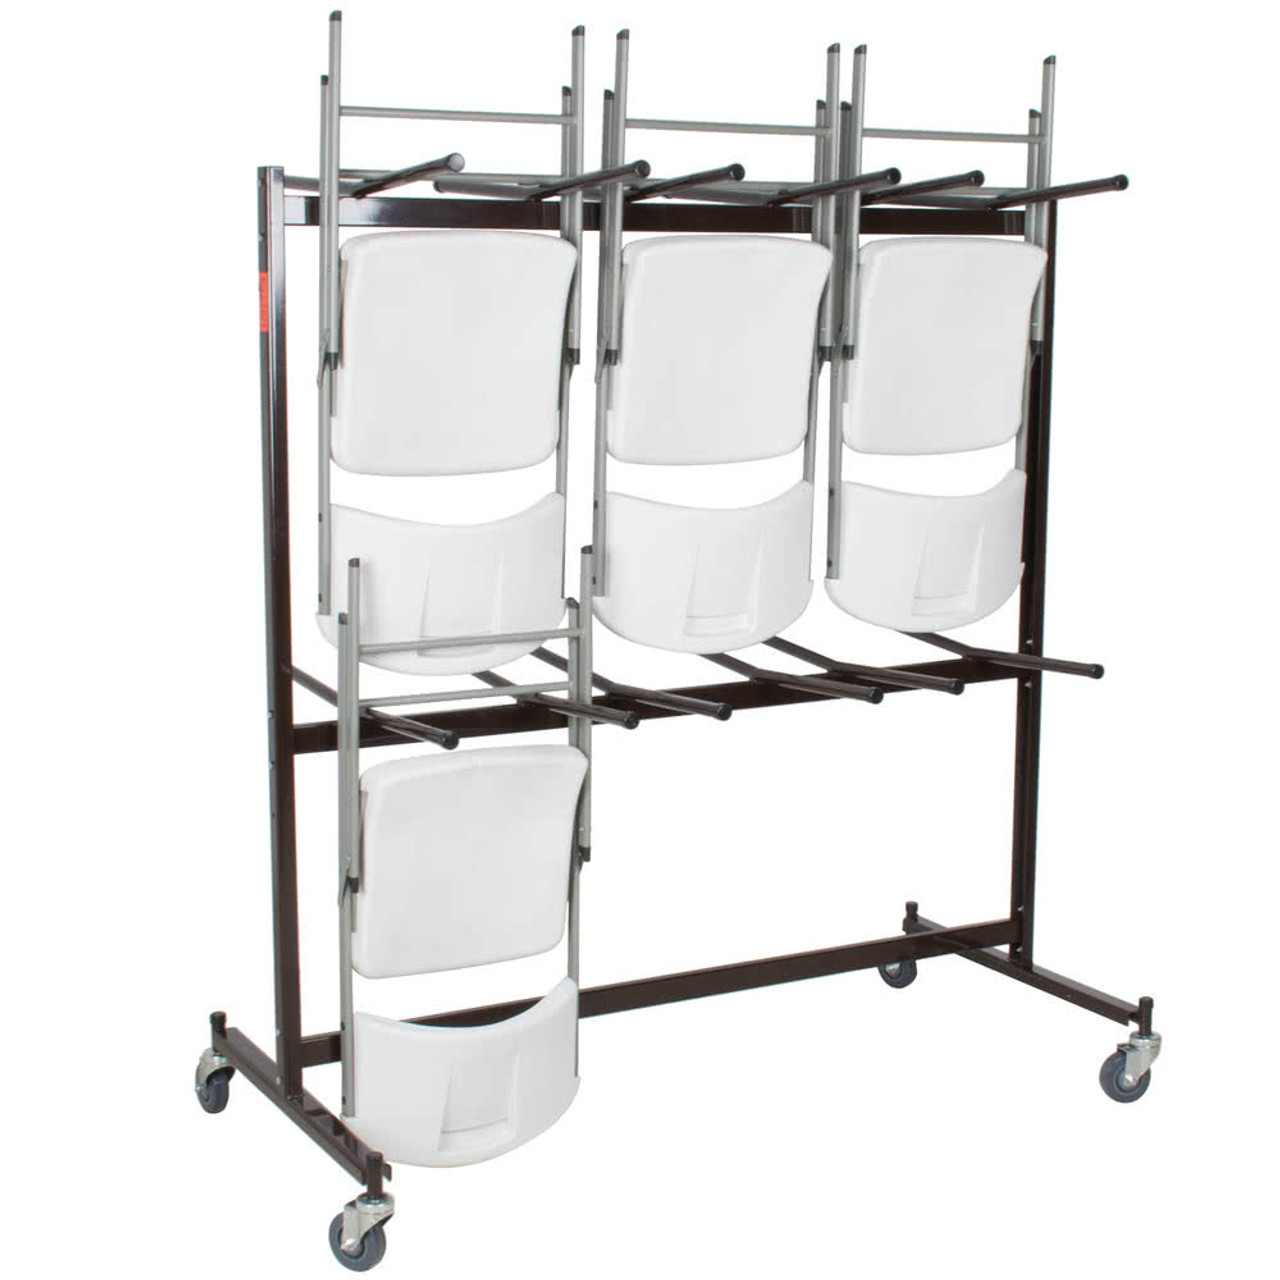 Chair Rack 84 Capacity Hanging Folding Chair Storage Cart By National Public Seating